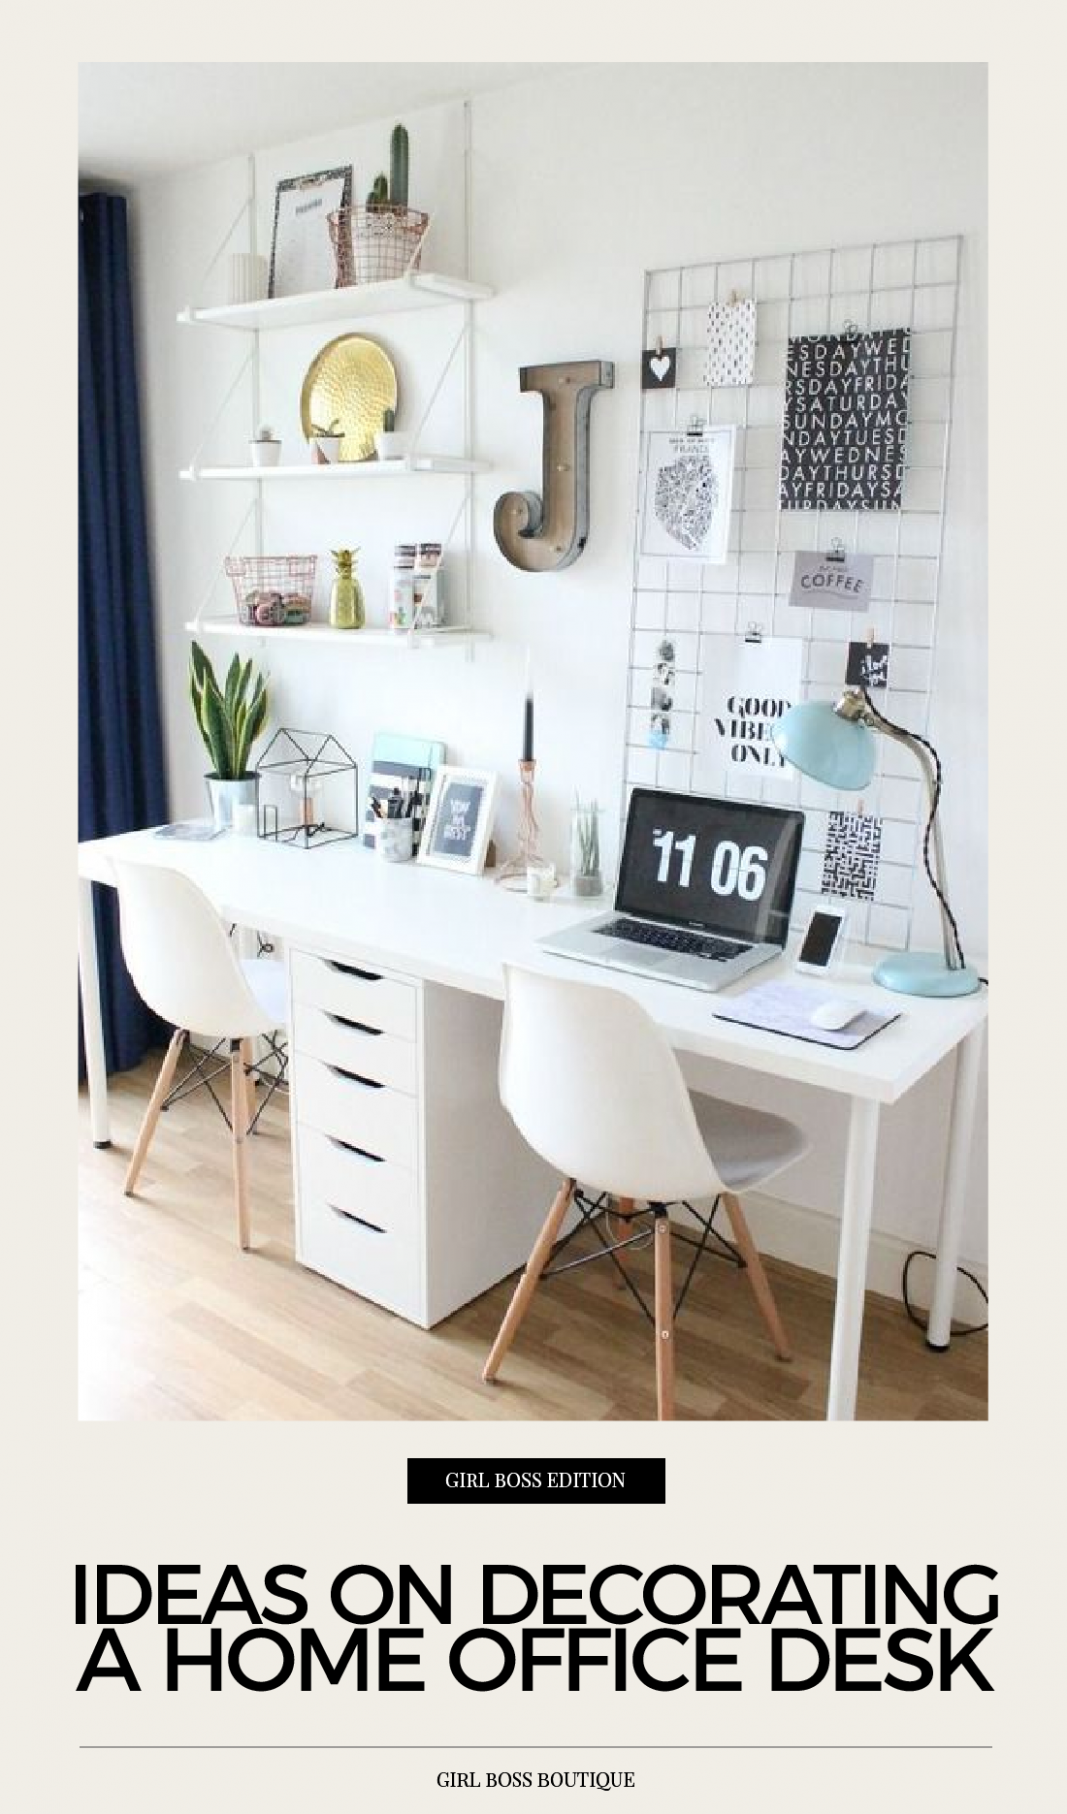 IDEAS ON DECORATING A HOME OFFICE DESK  by Girl Boss Boutique  - Home Office Table Ideas